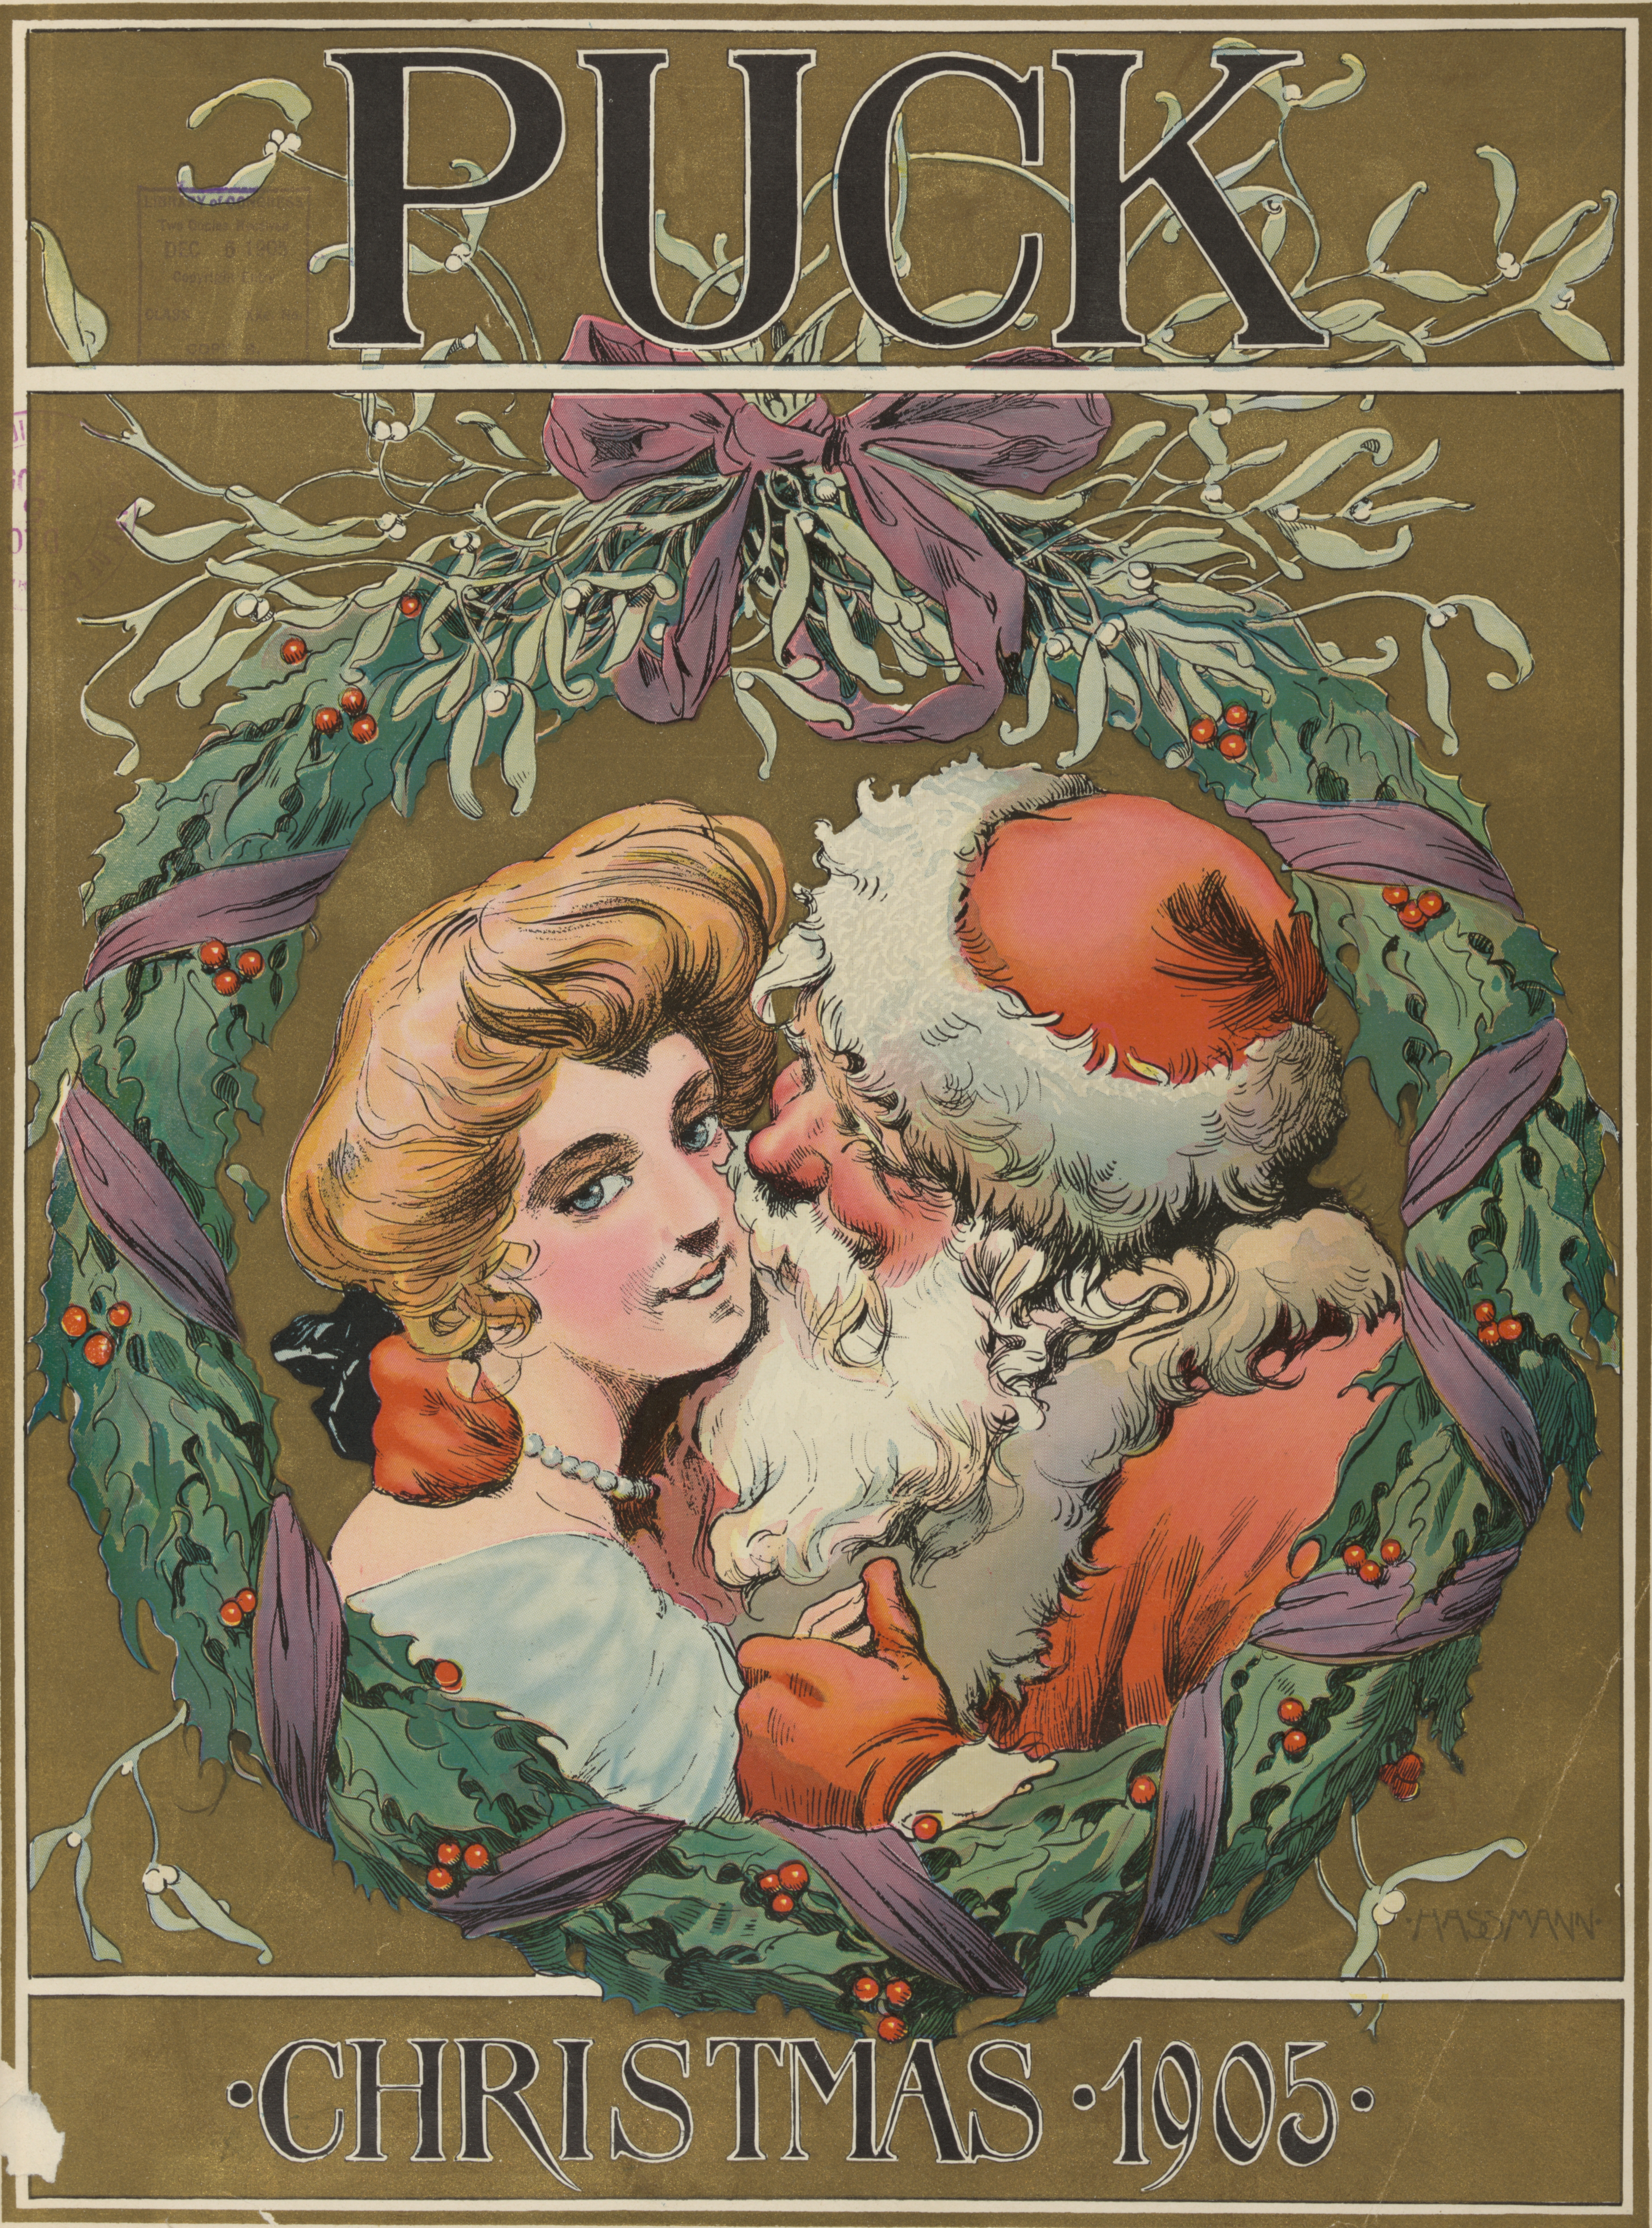 Santa Claus as illustrated in Puck (magazine), v. 58, no. 1501 (December 6, 1905), cover.